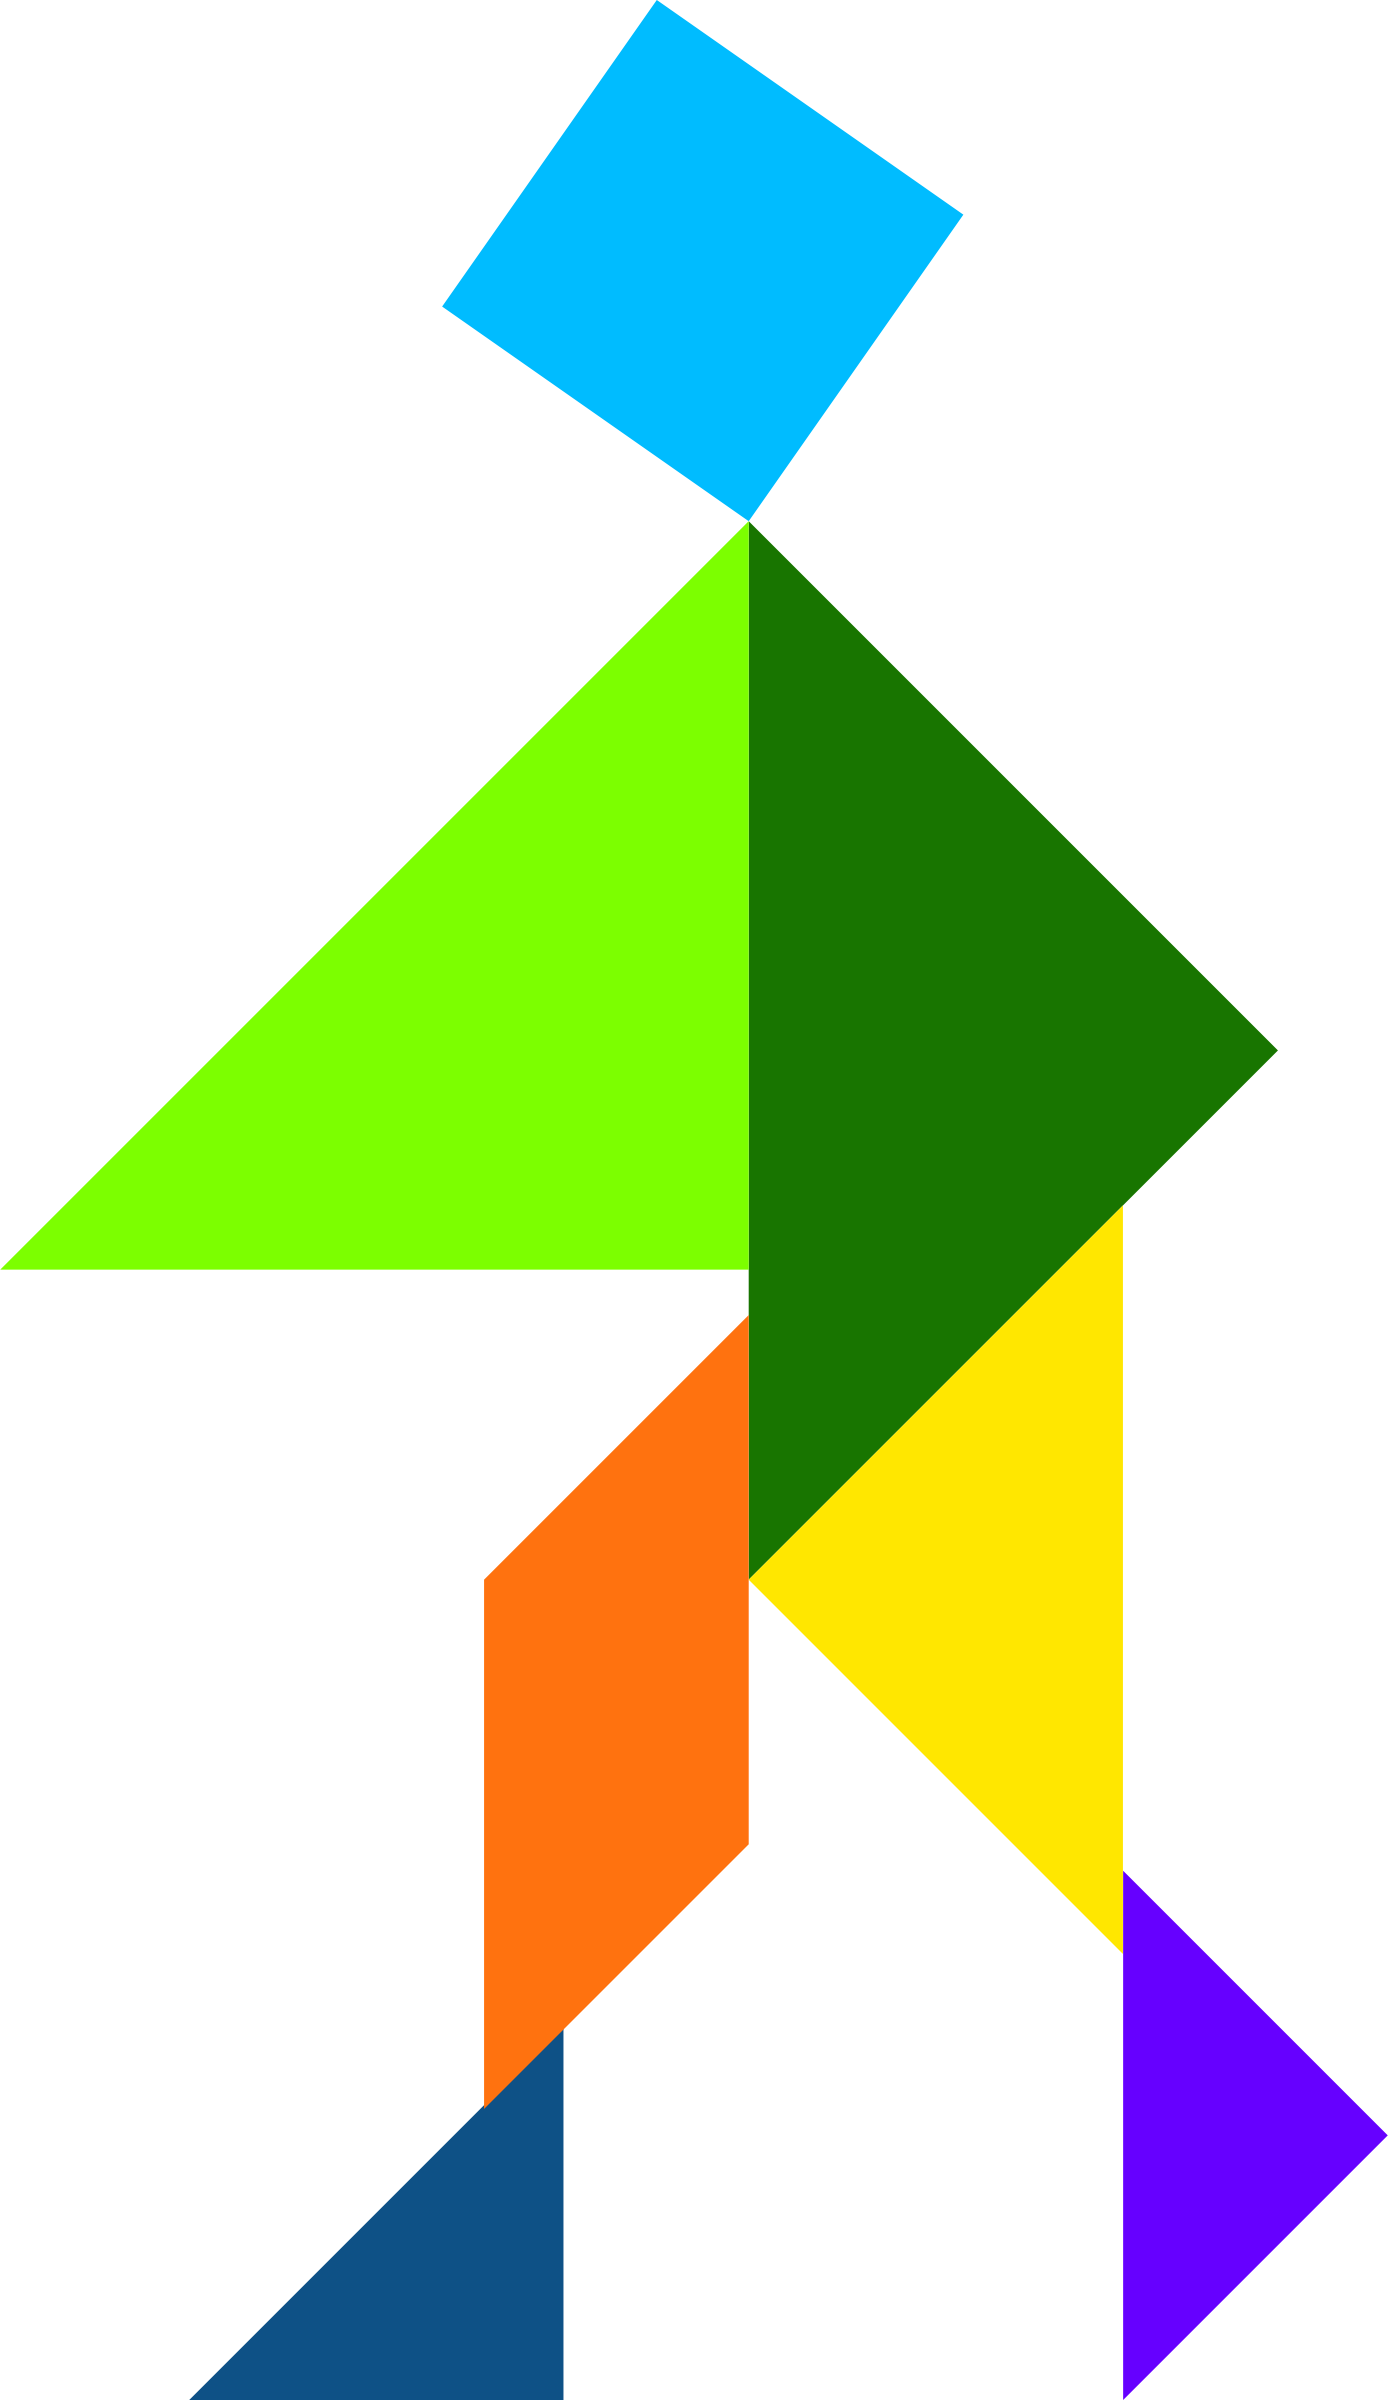 Tangram by dominiquechappard